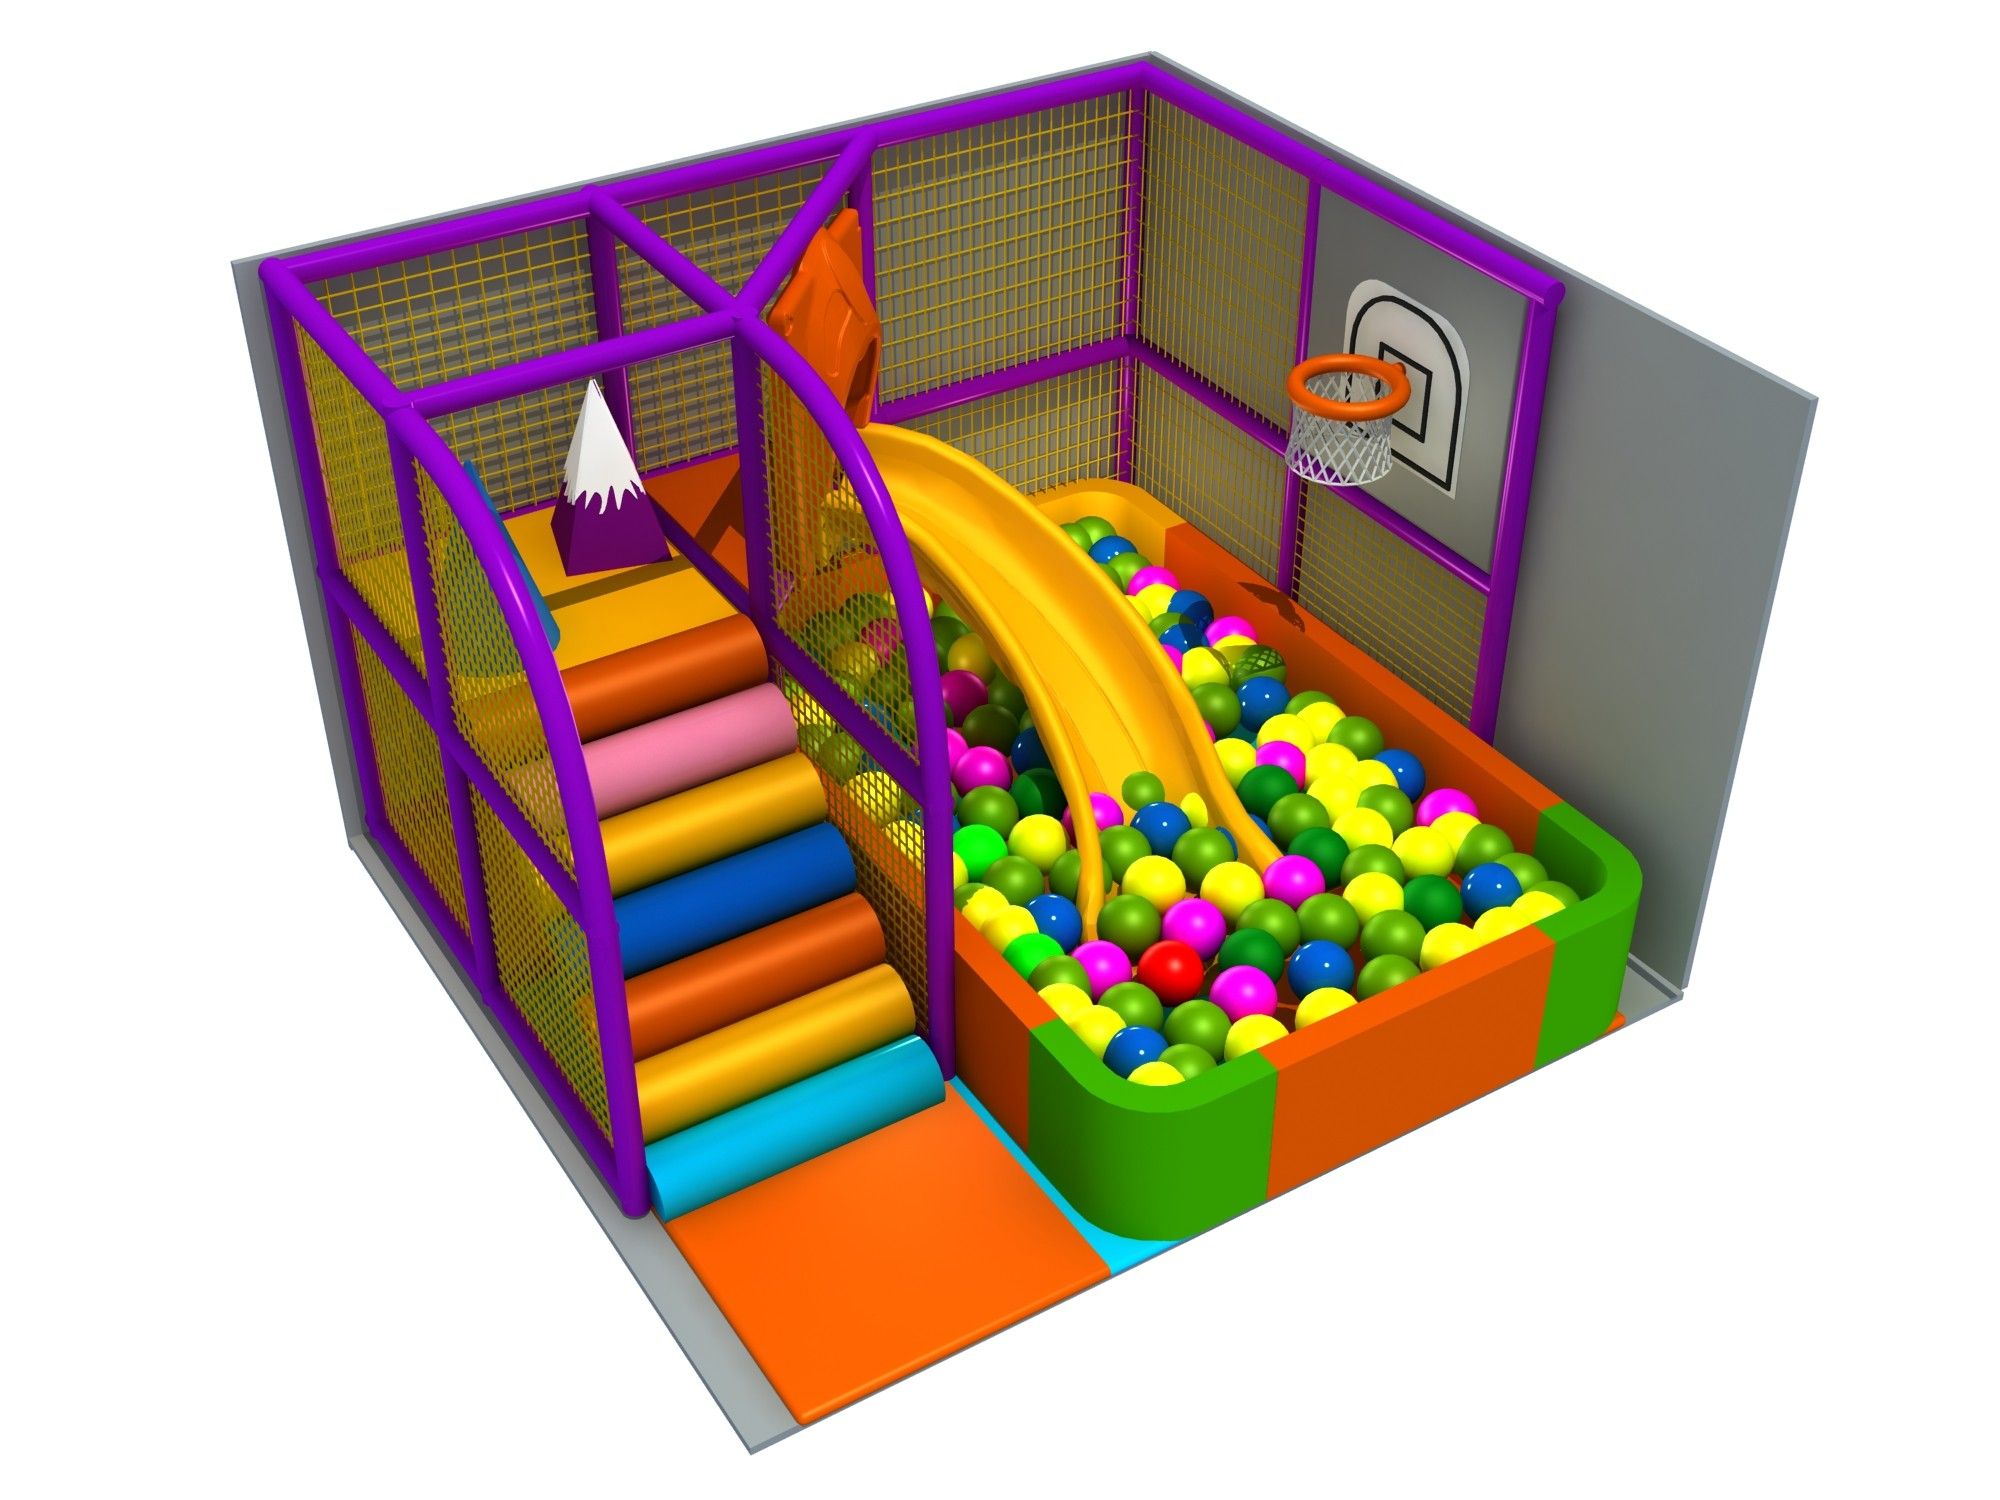 Small indoor playground area